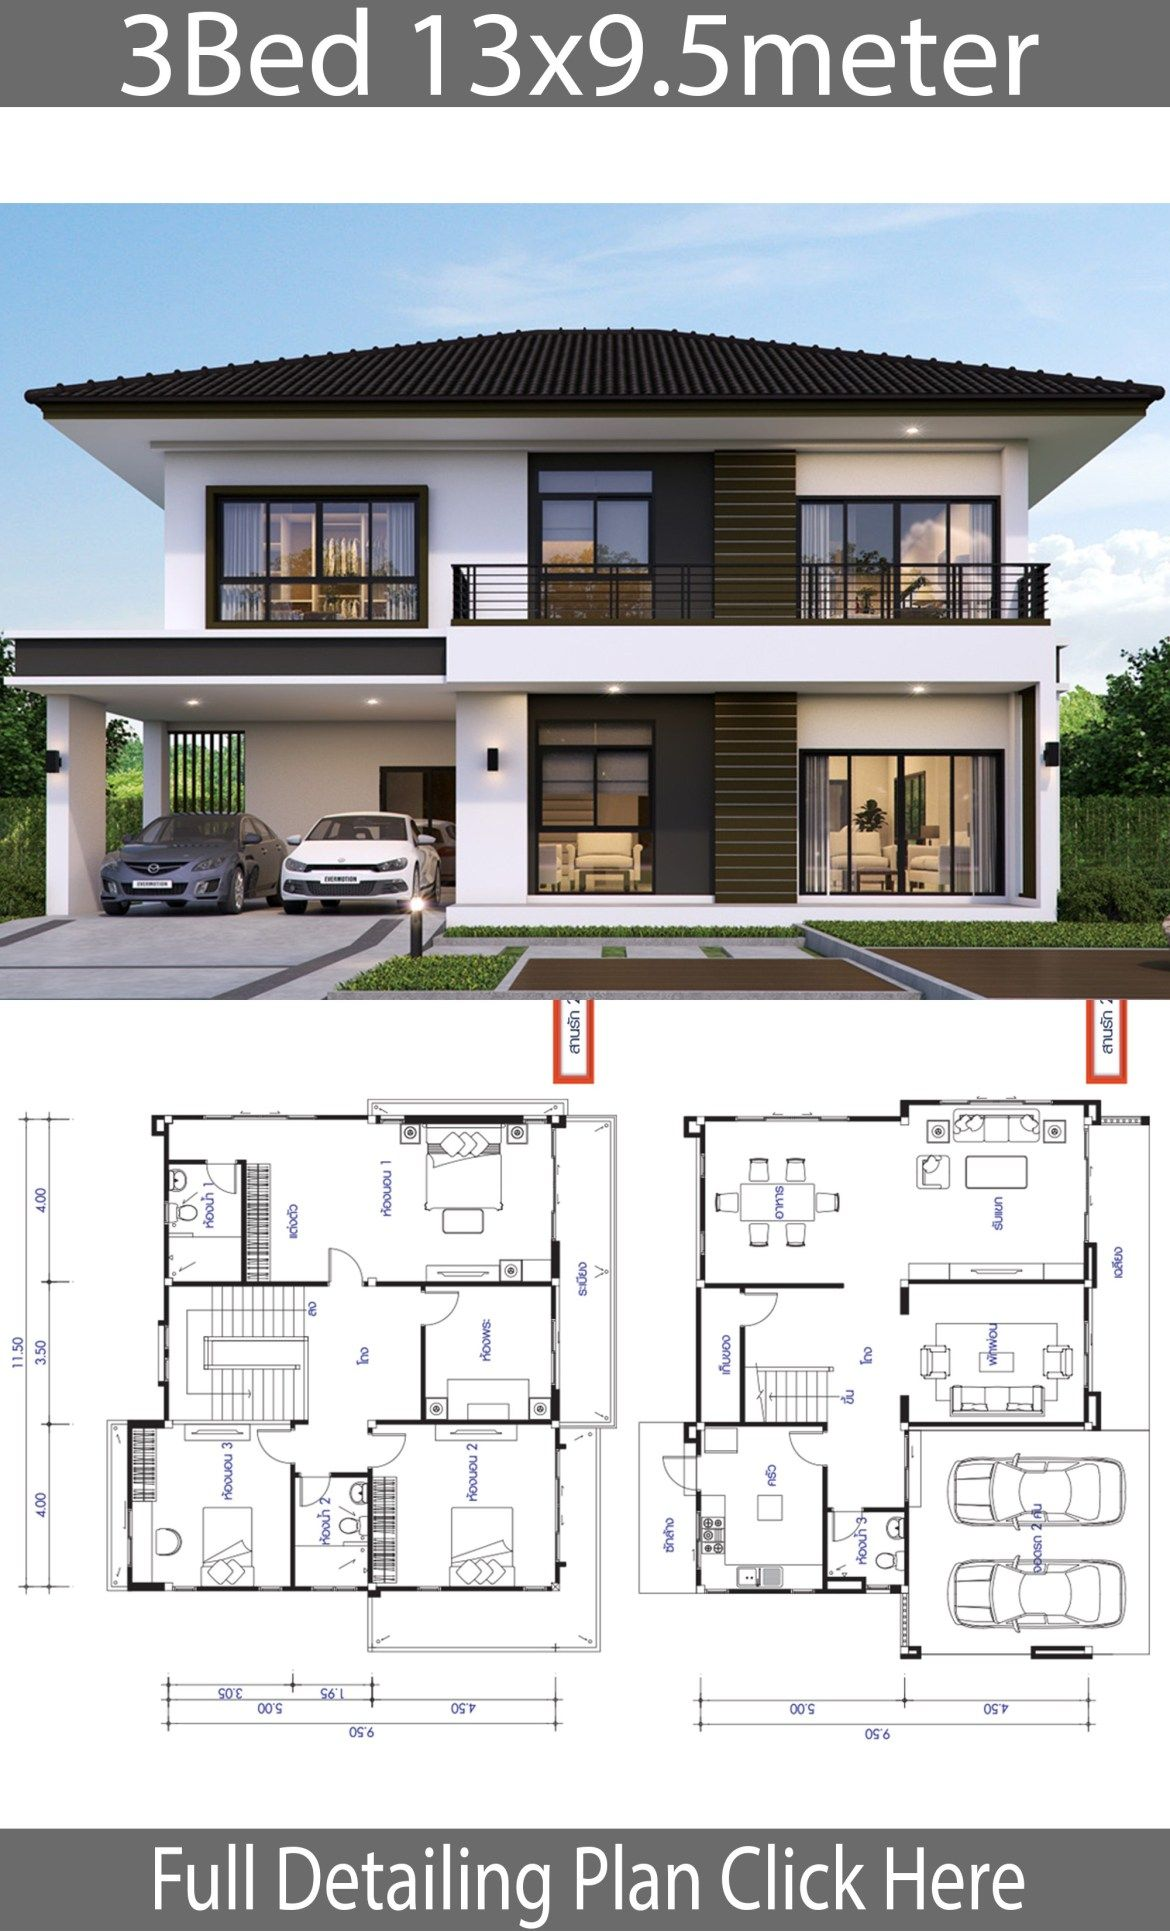 House Design Plan 13x9 5m With 3 Bedrooms Home Design With Plansearch Architectural House Plans Modern House Plans House Architecture Design